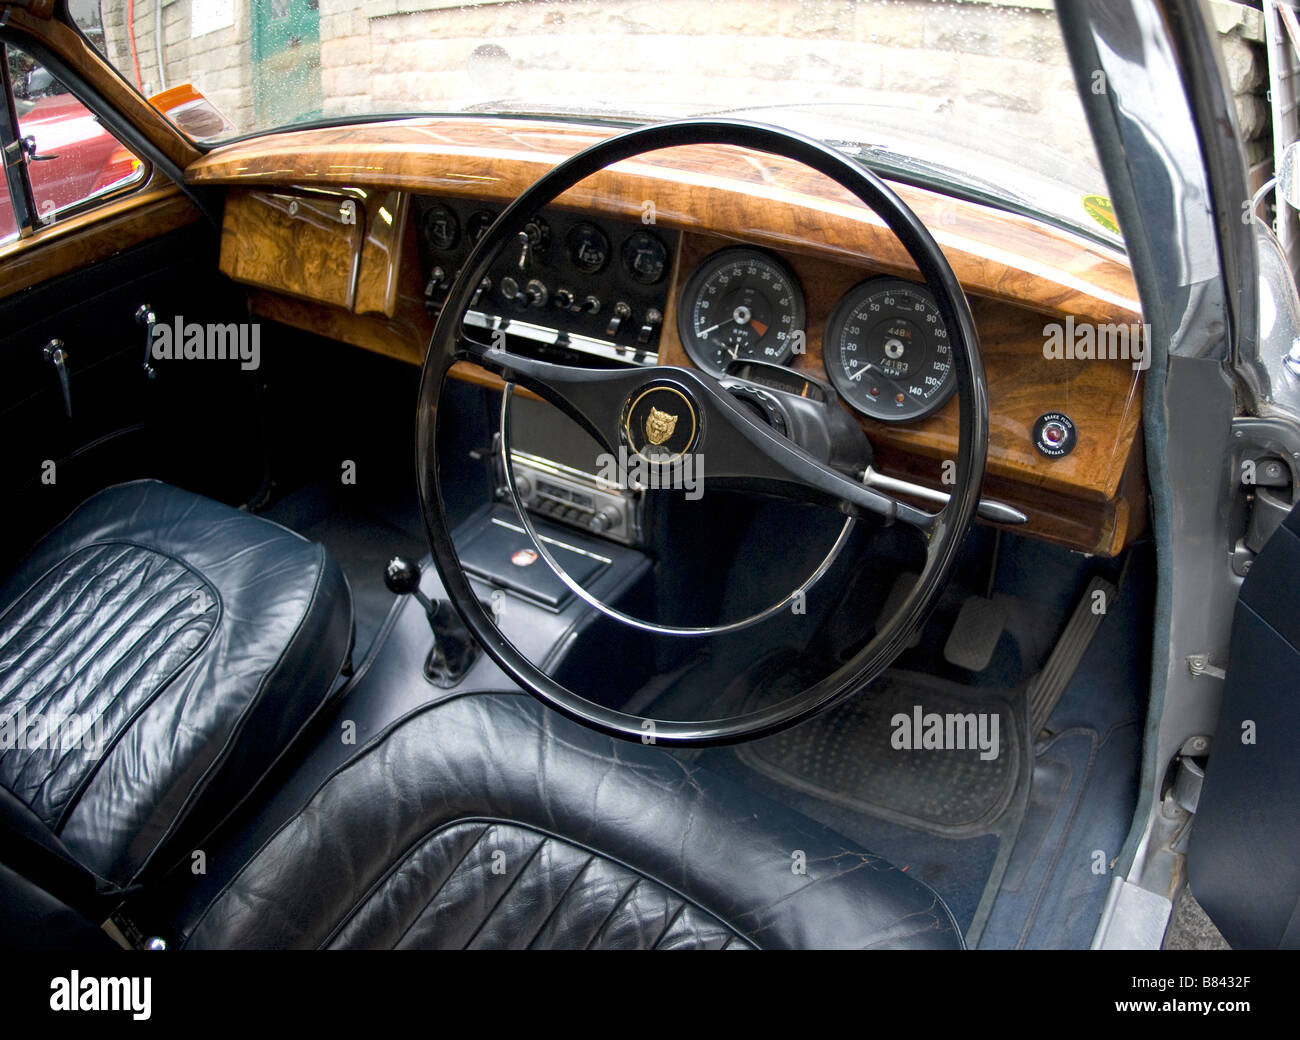 jaguar mk2 car interior english leather and wood stock photo royalty free image 22217847 alamy. Black Bedroom Furniture Sets. Home Design Ideas